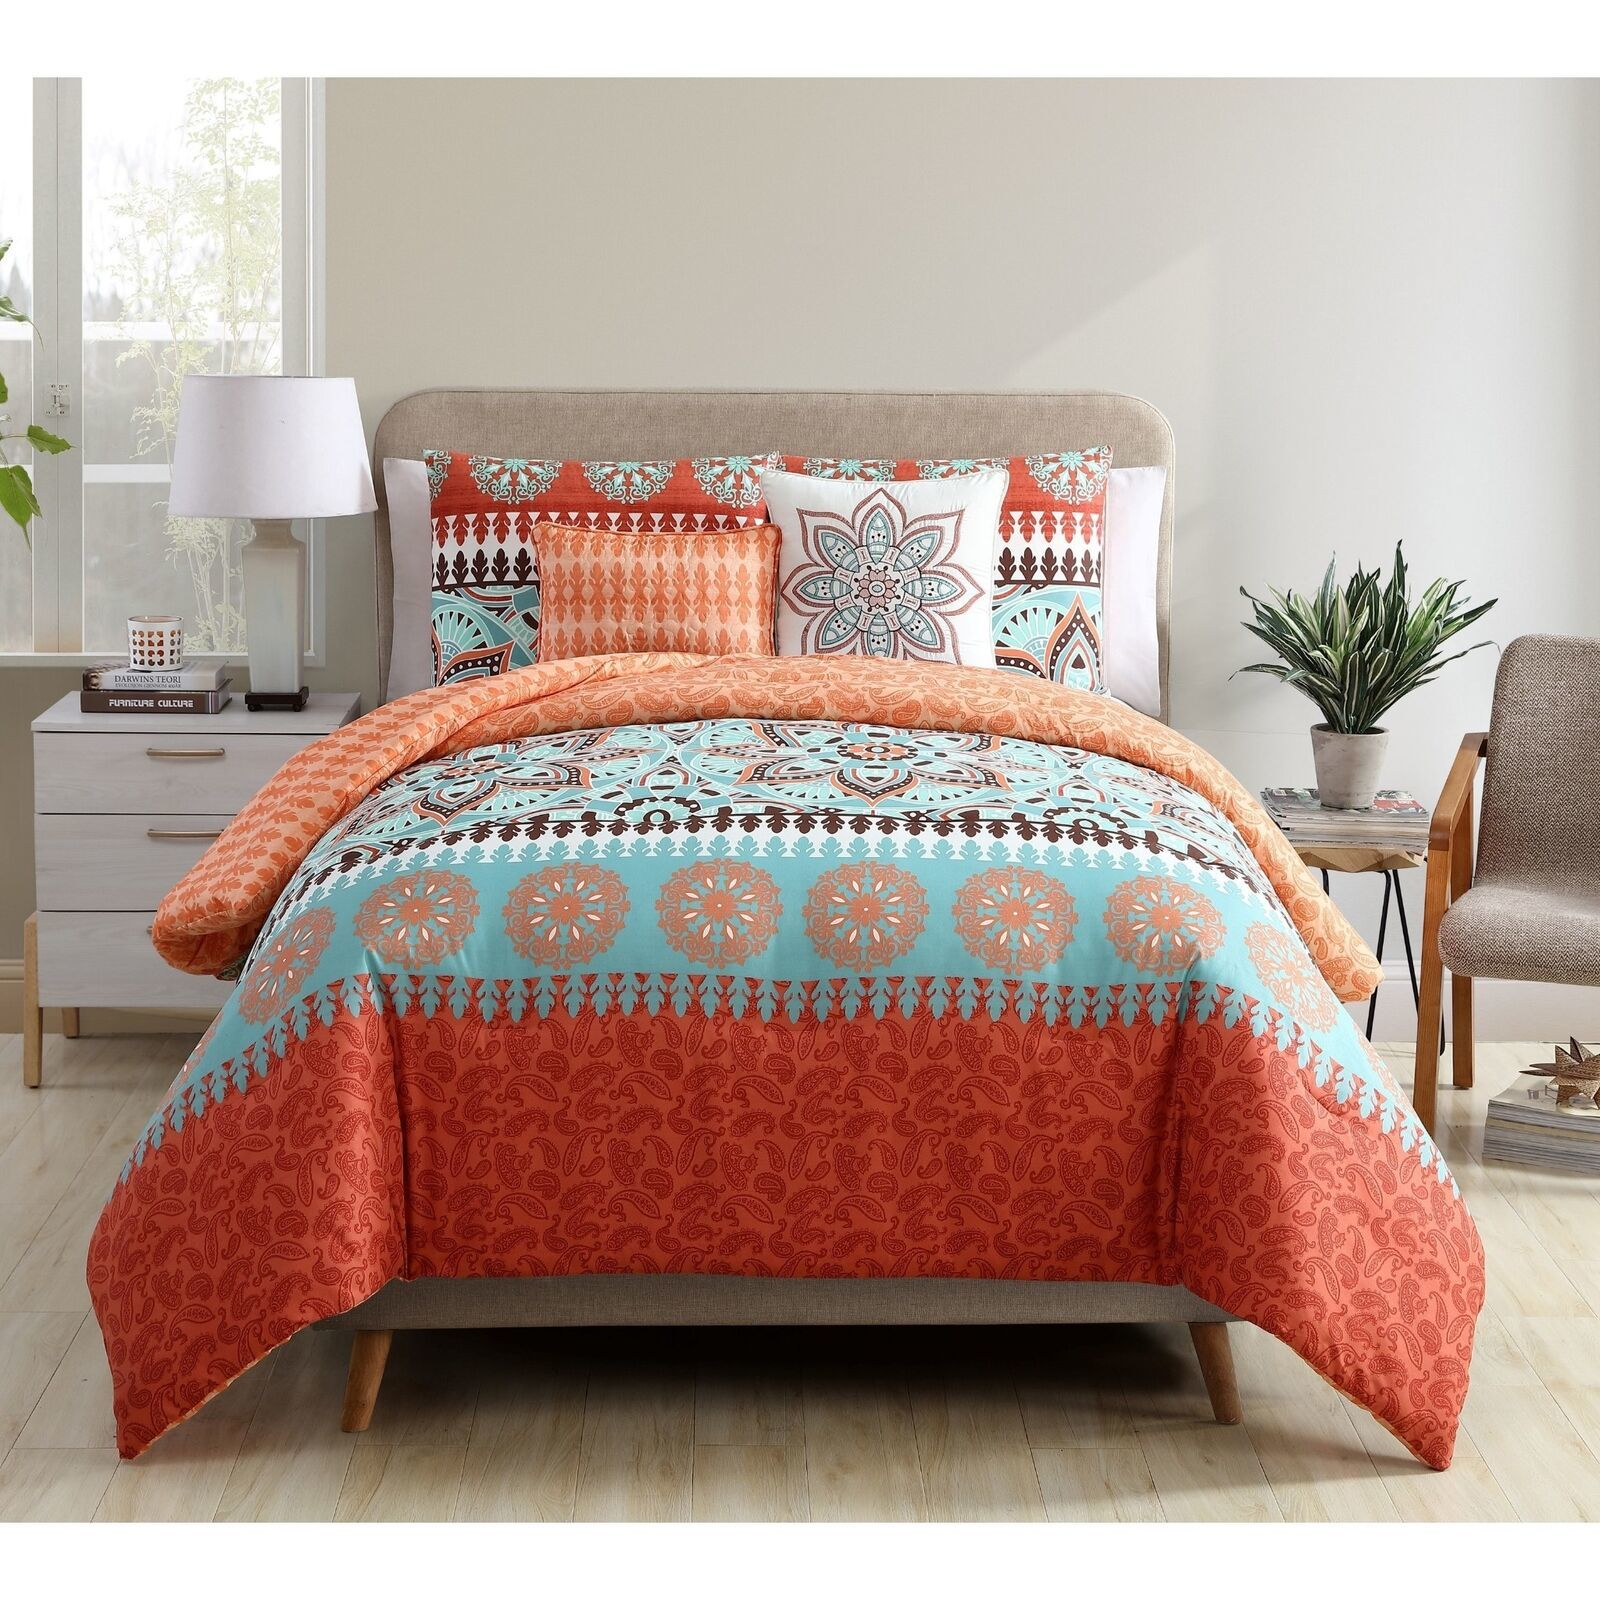 Twin Xl Full Queen King Bed Orange Blue Paisley Boho